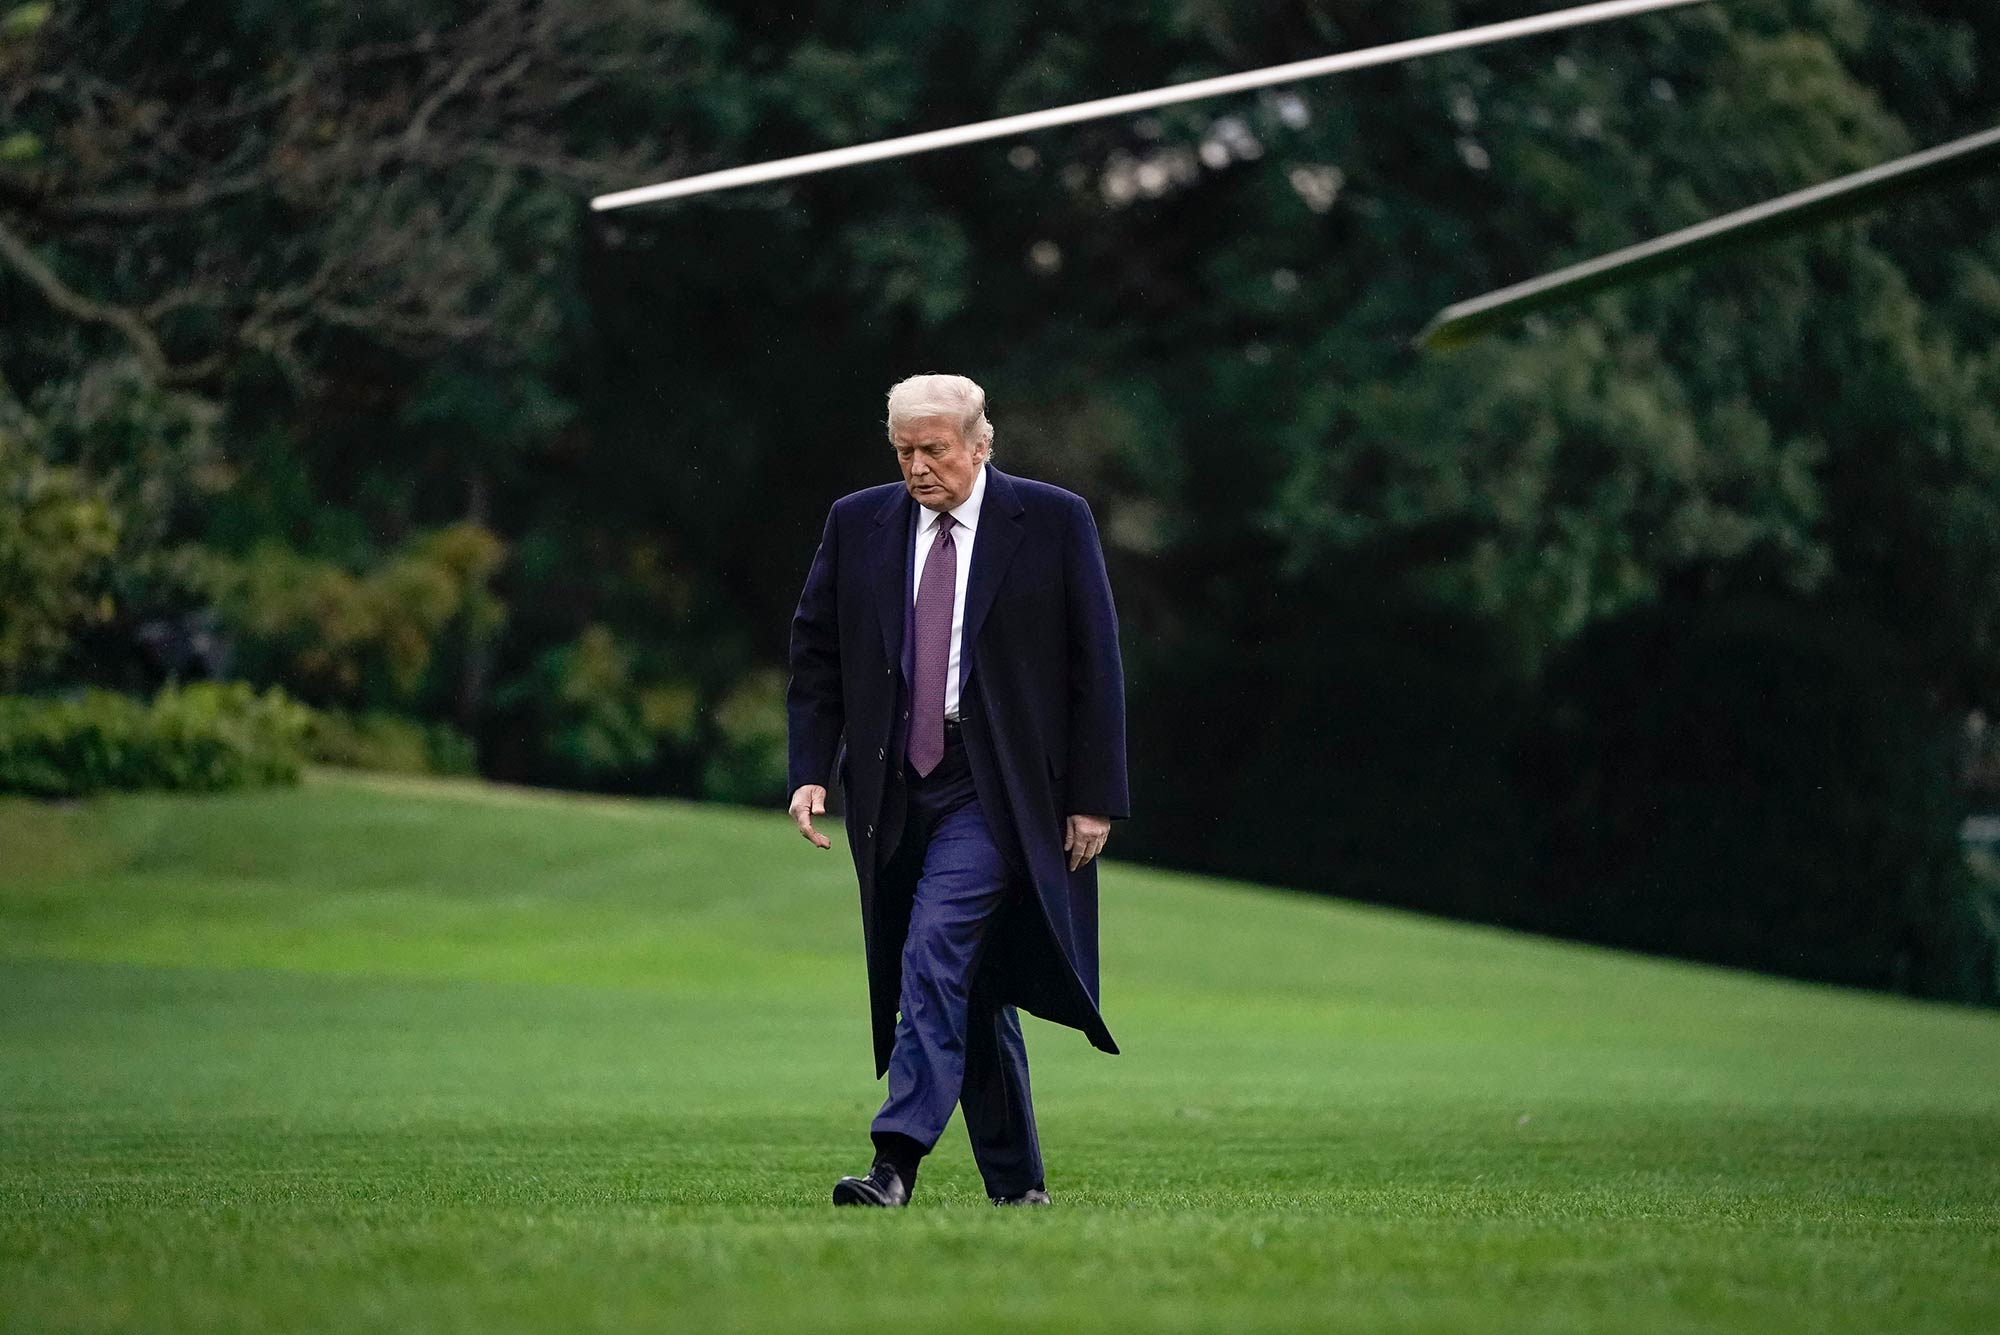 President Trump arrives on the White House lawn, October 1, 2020, after attending a fund raiser in New Jersey